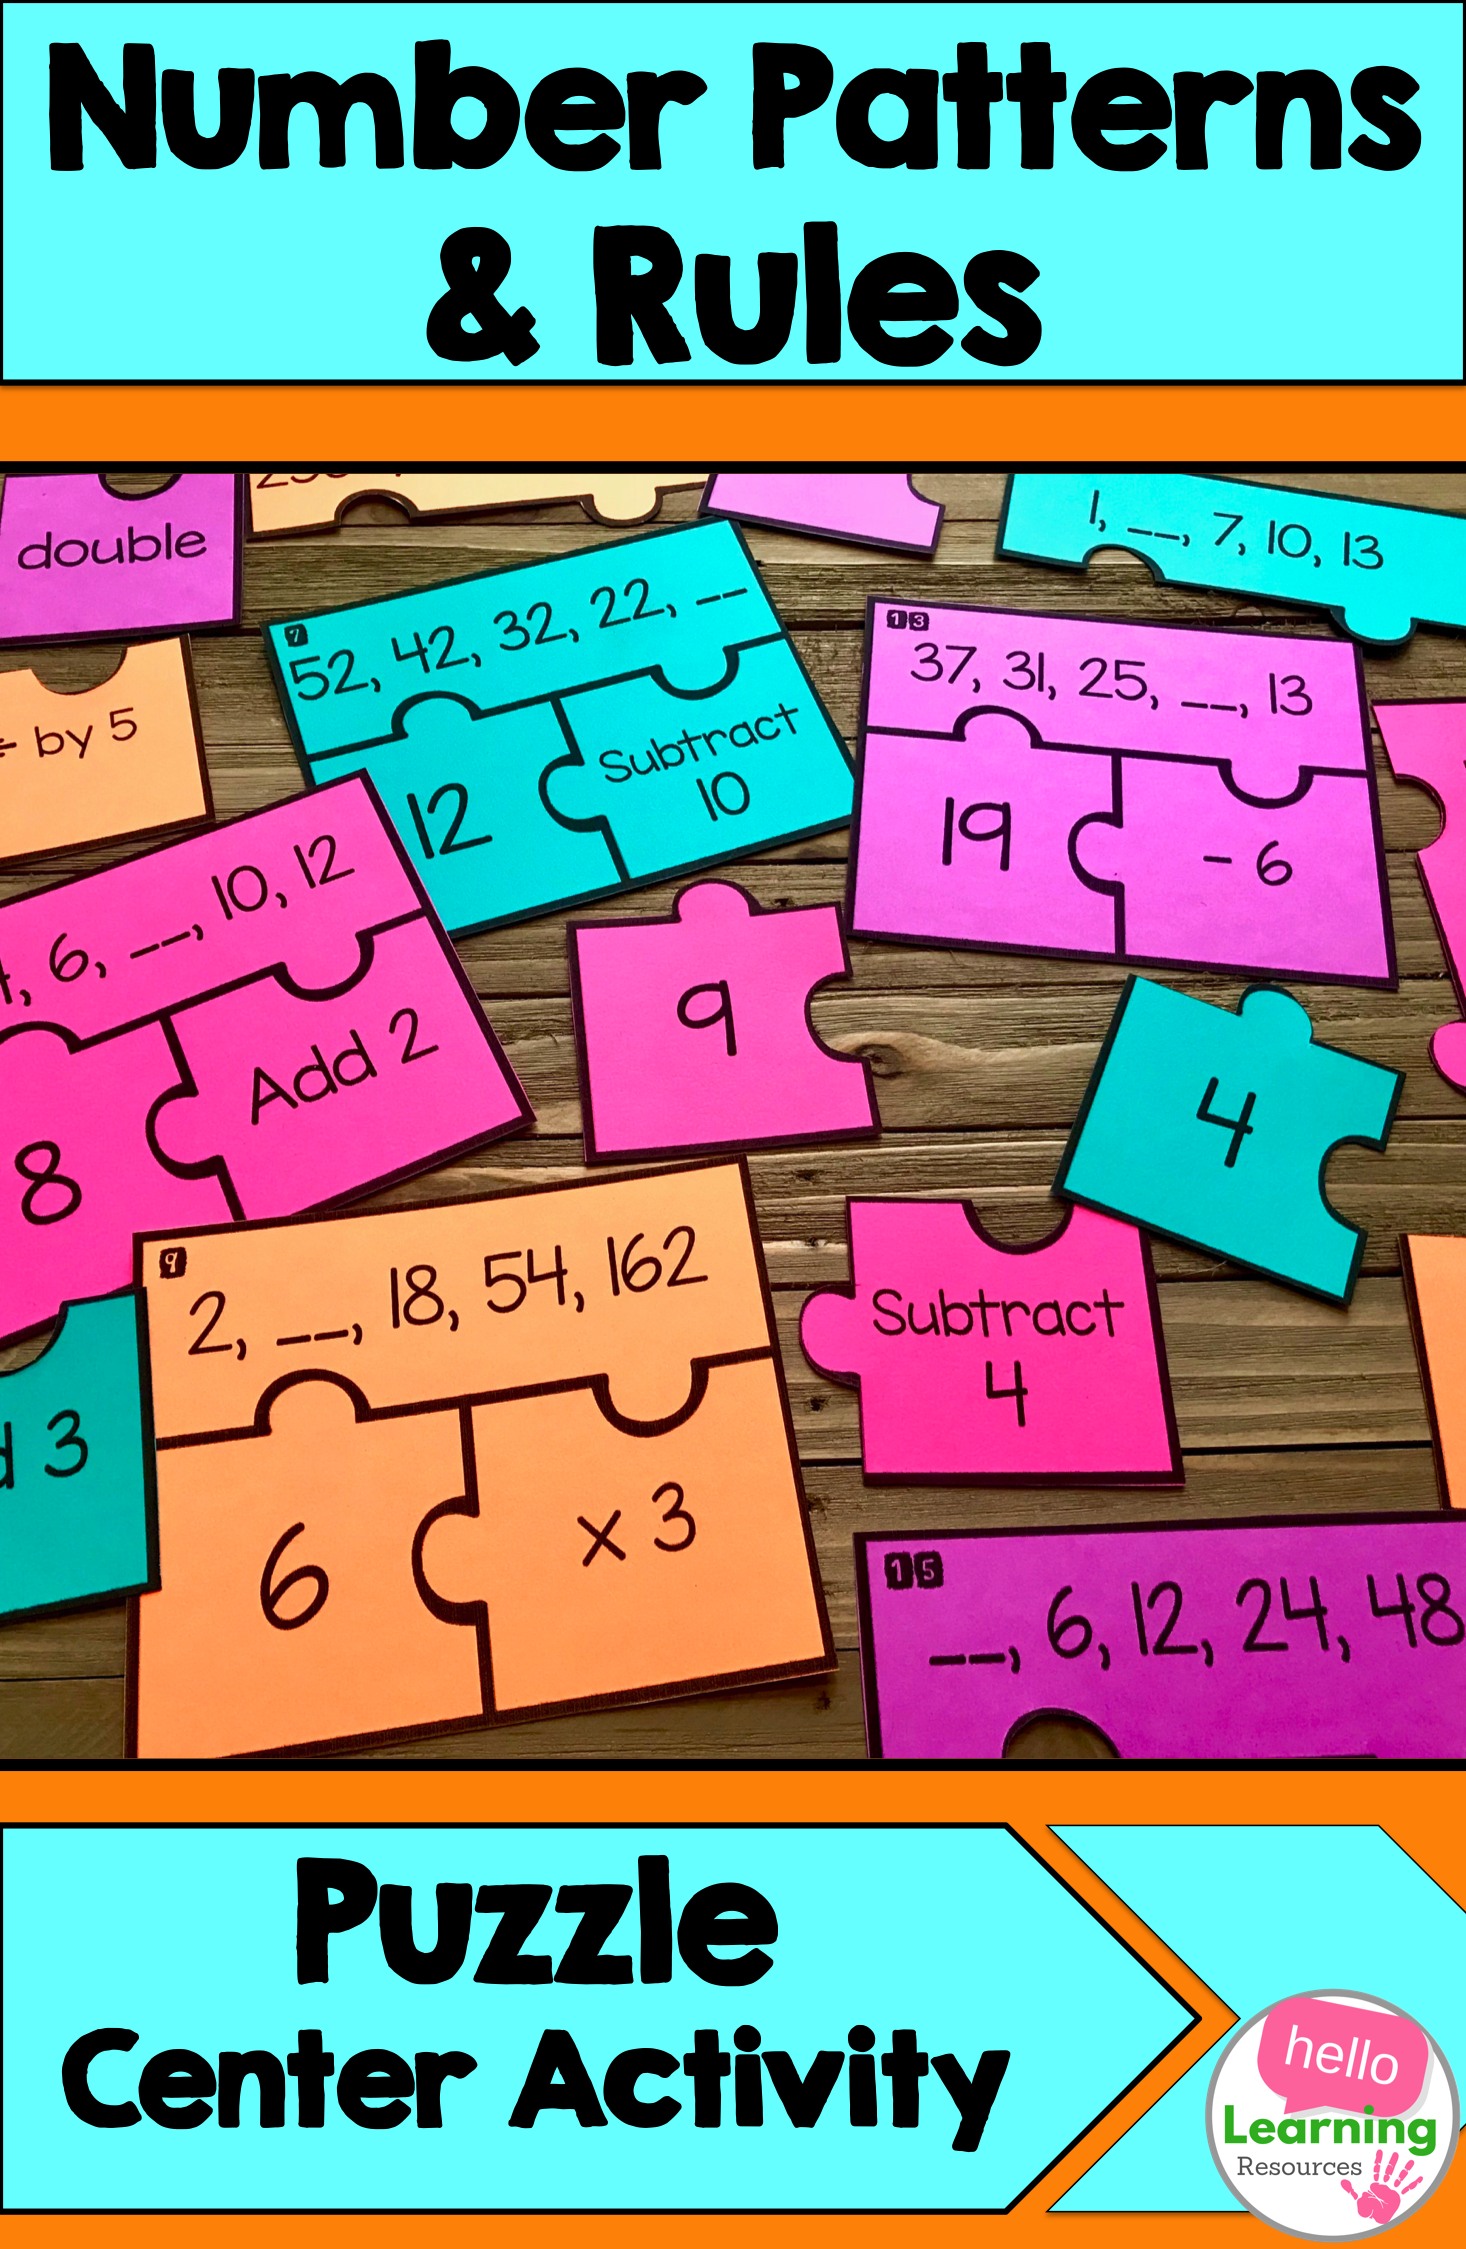 medium resolution of Number Patterns and Rules Puzzle   Math patterns activities